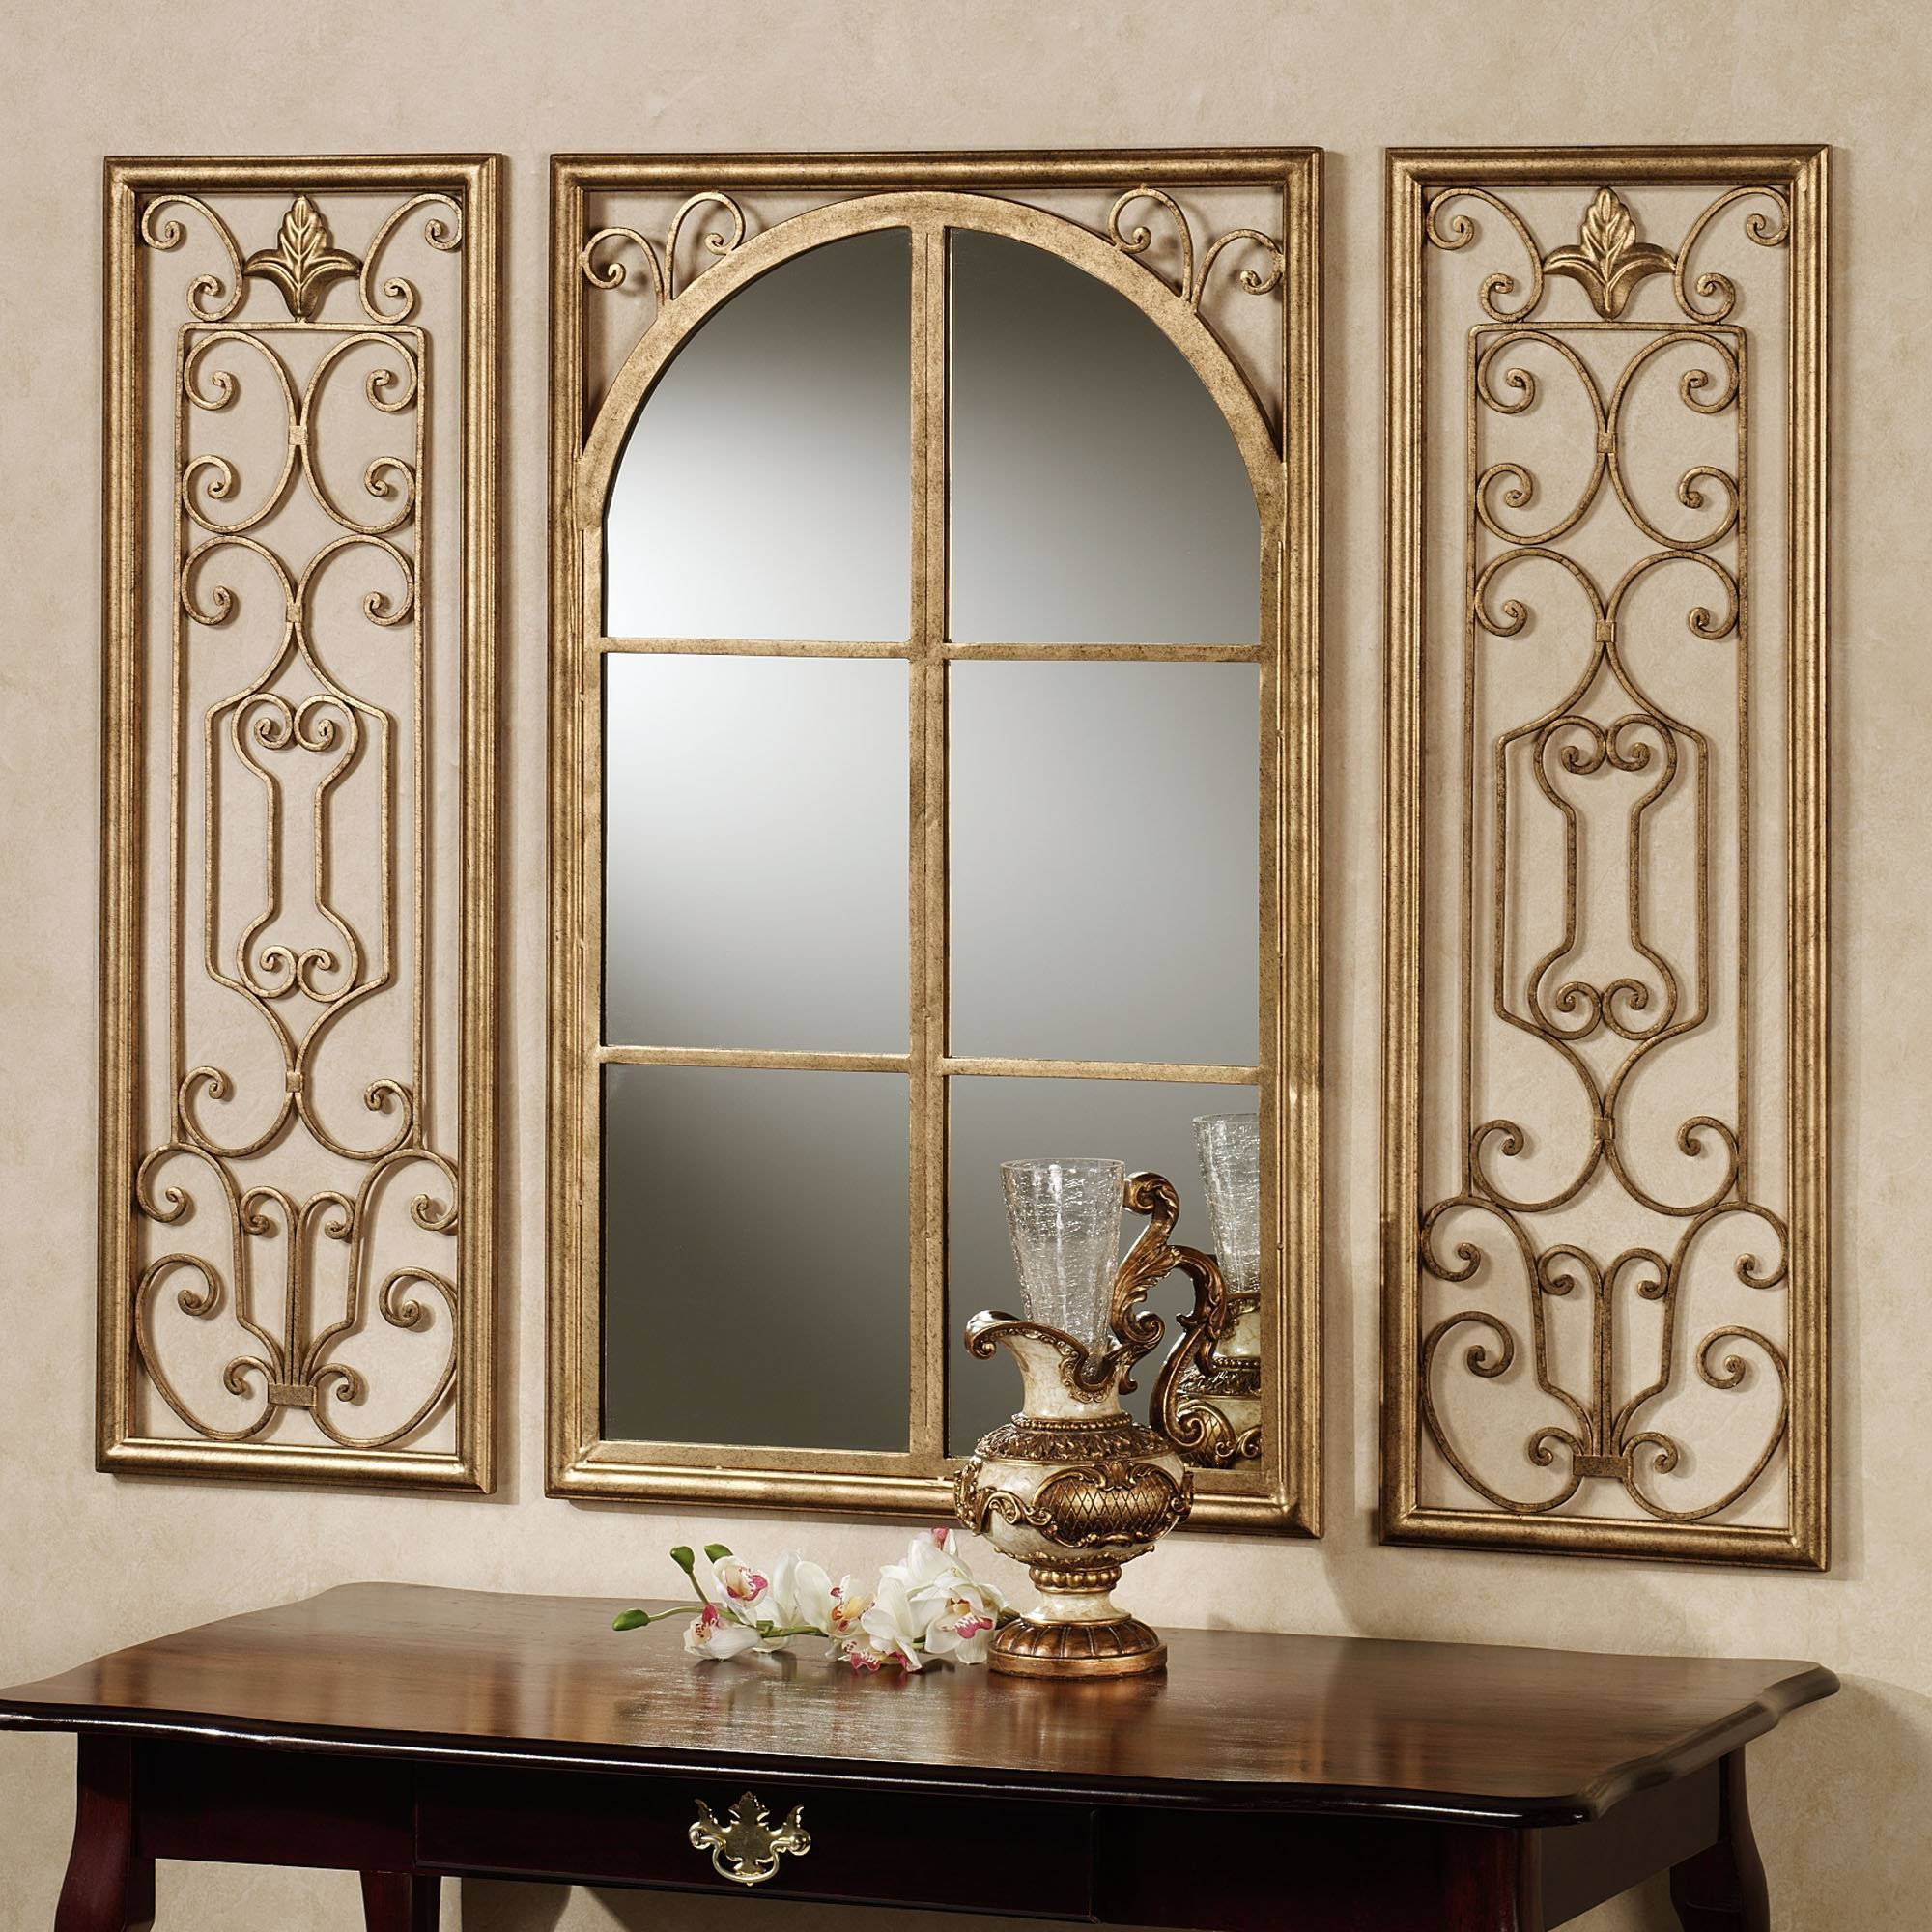 Large Decorative Wall Mirrors | Decorating Ideas with regard to Cream Ornate Mirrors (Image 10 of 25)